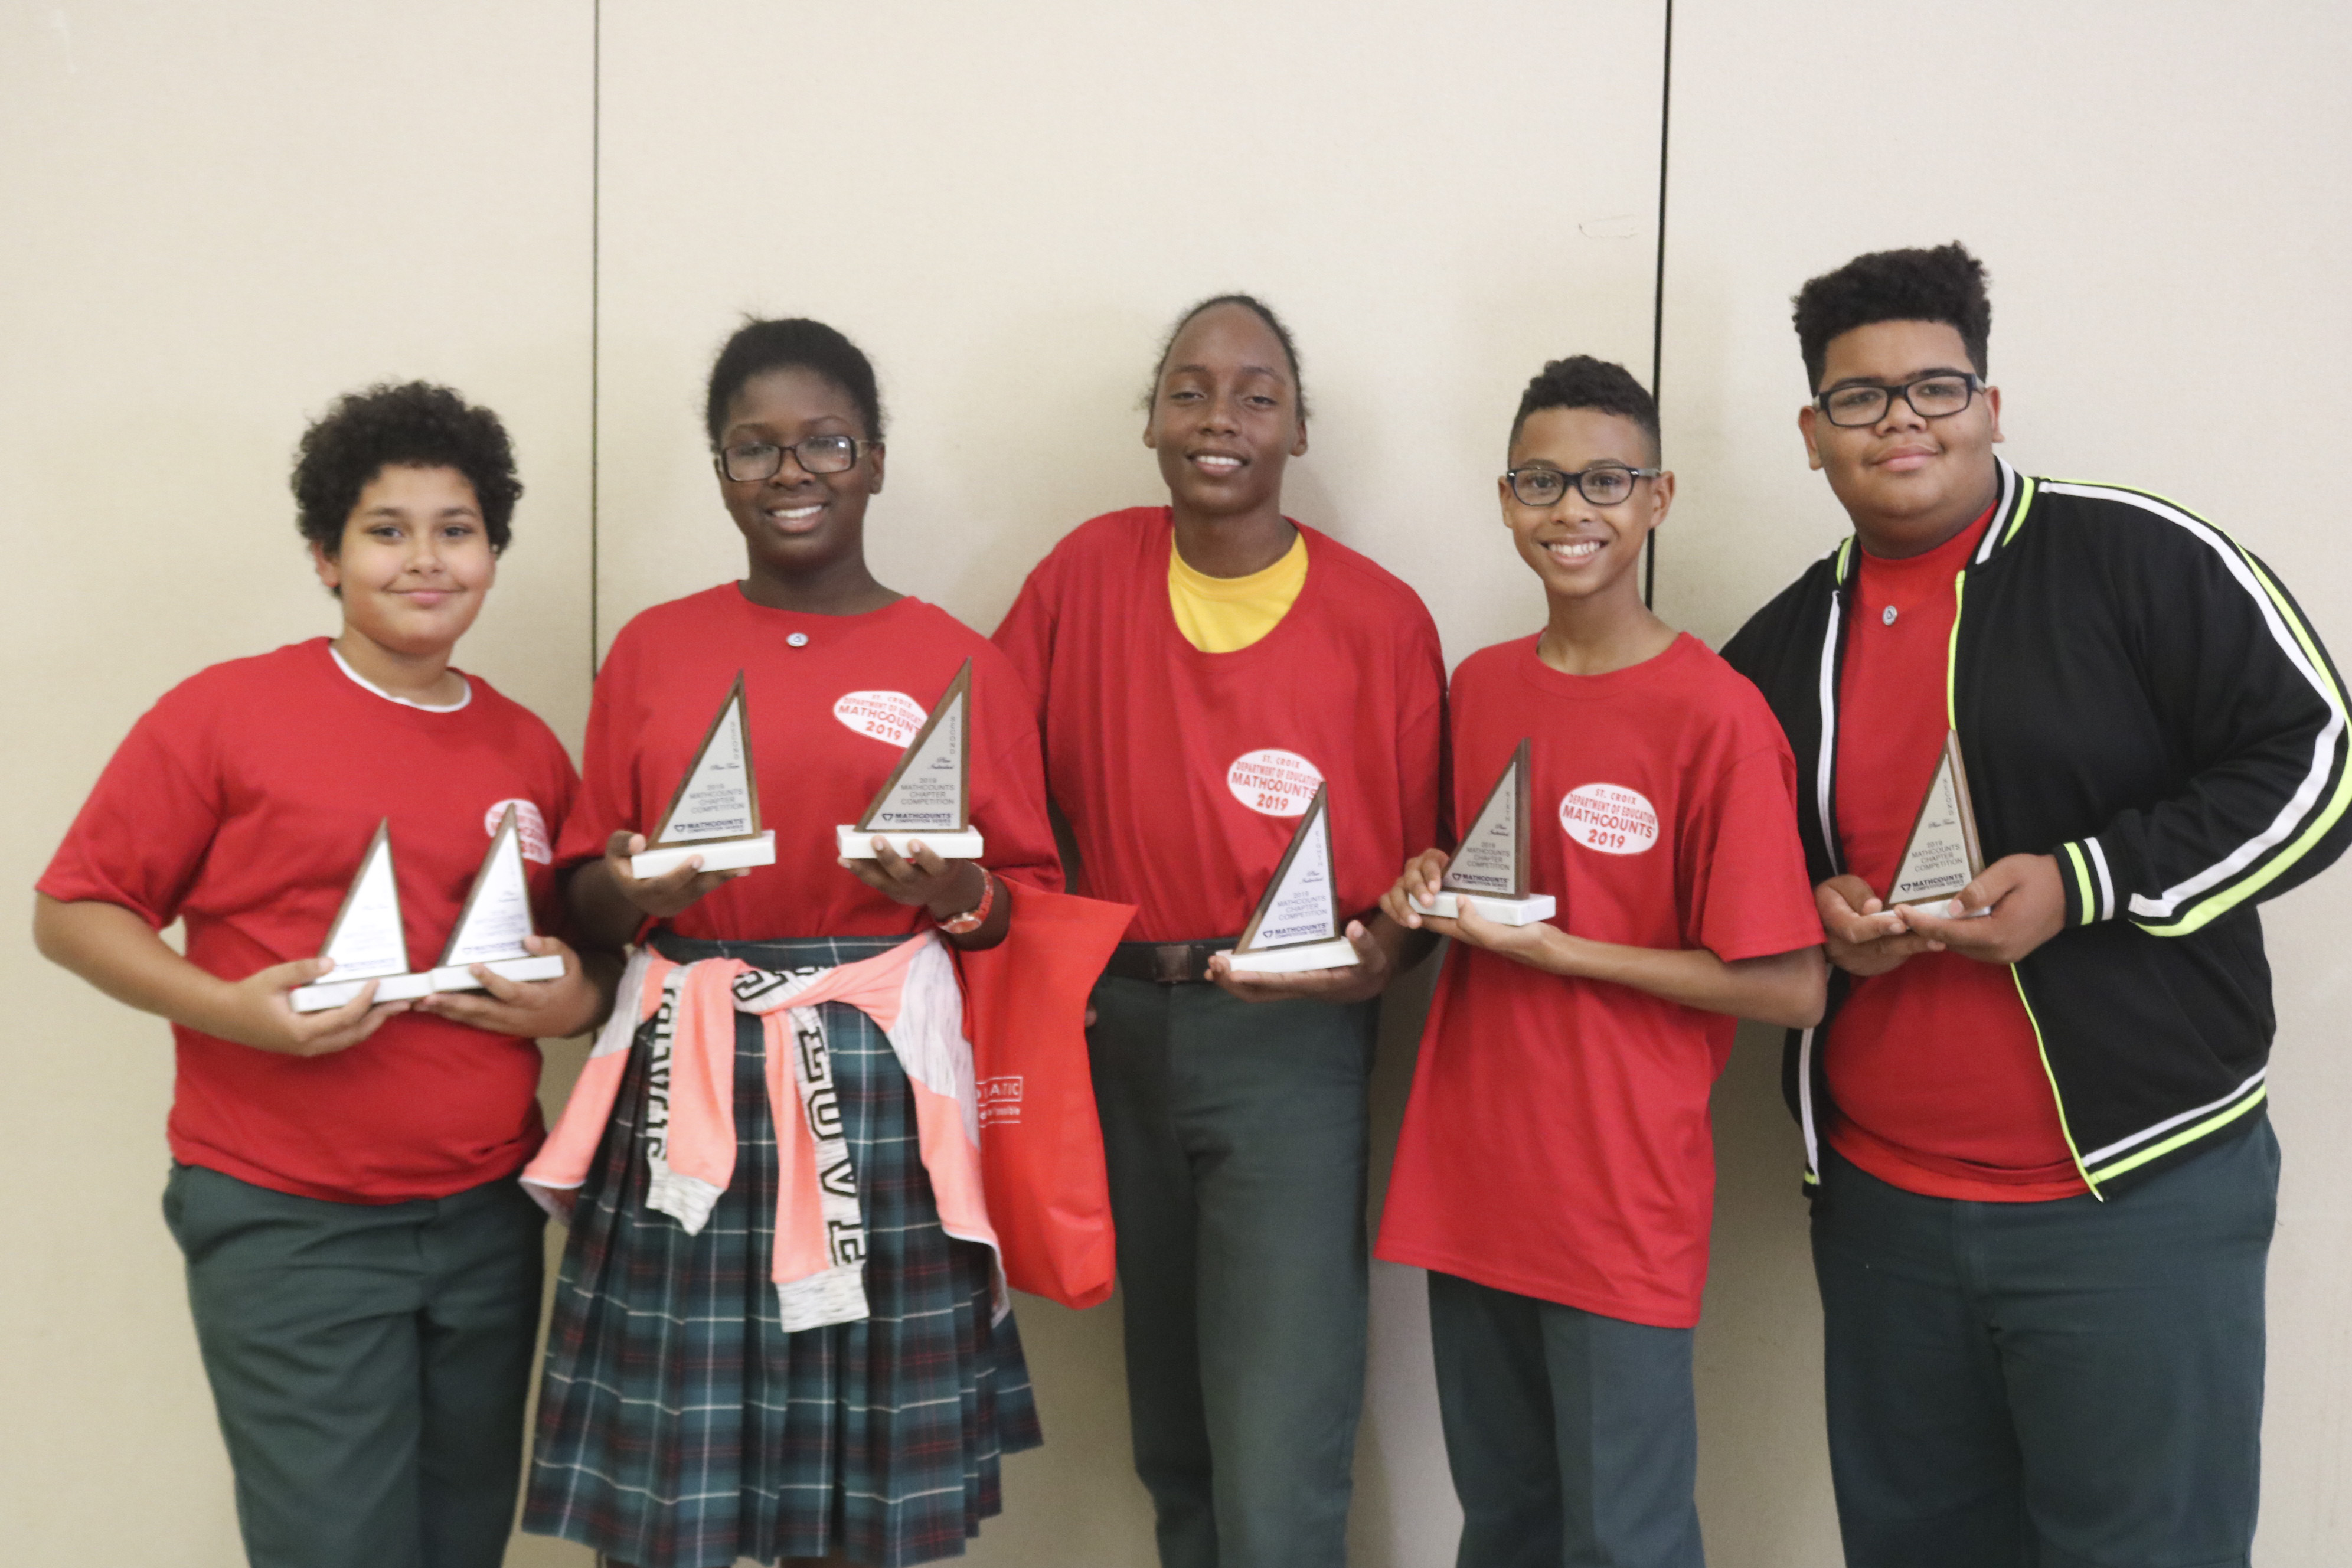 2nd Place Church of God (Left to Right) Samir Boucenna; Tiara Stevens; Zanyjah Rodriguez; Jaden Gonzalez and Jose Nunez  .JPG